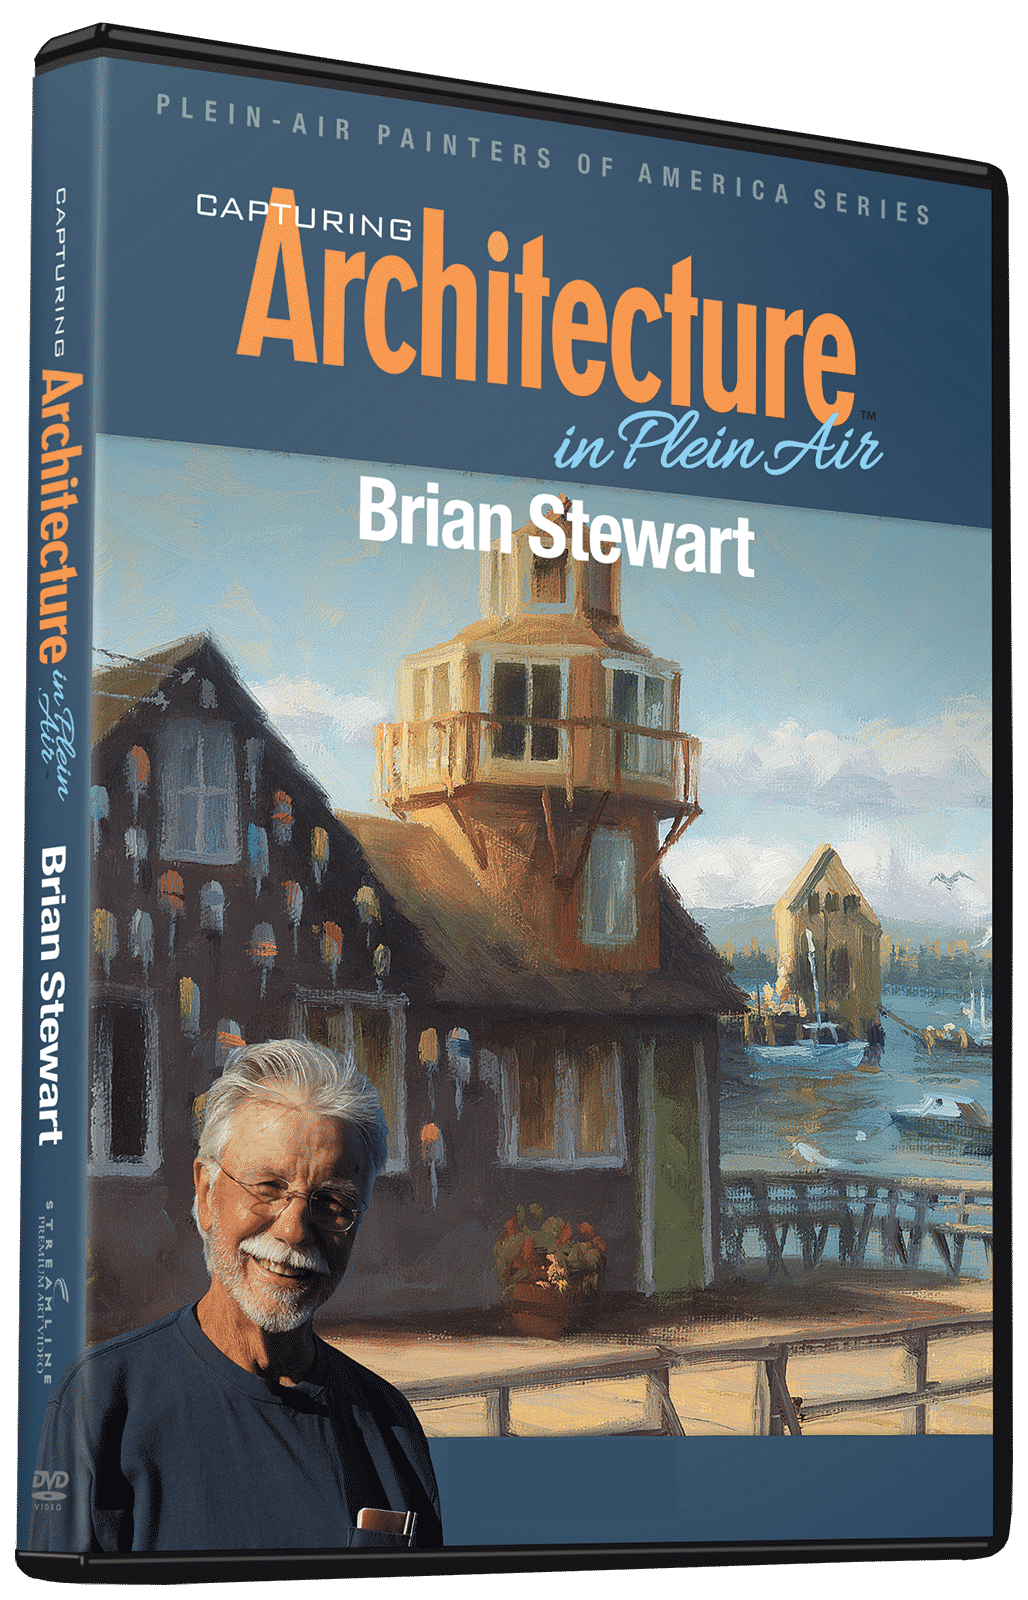 Brian Stewart: Capturing Architecture in Plein Air